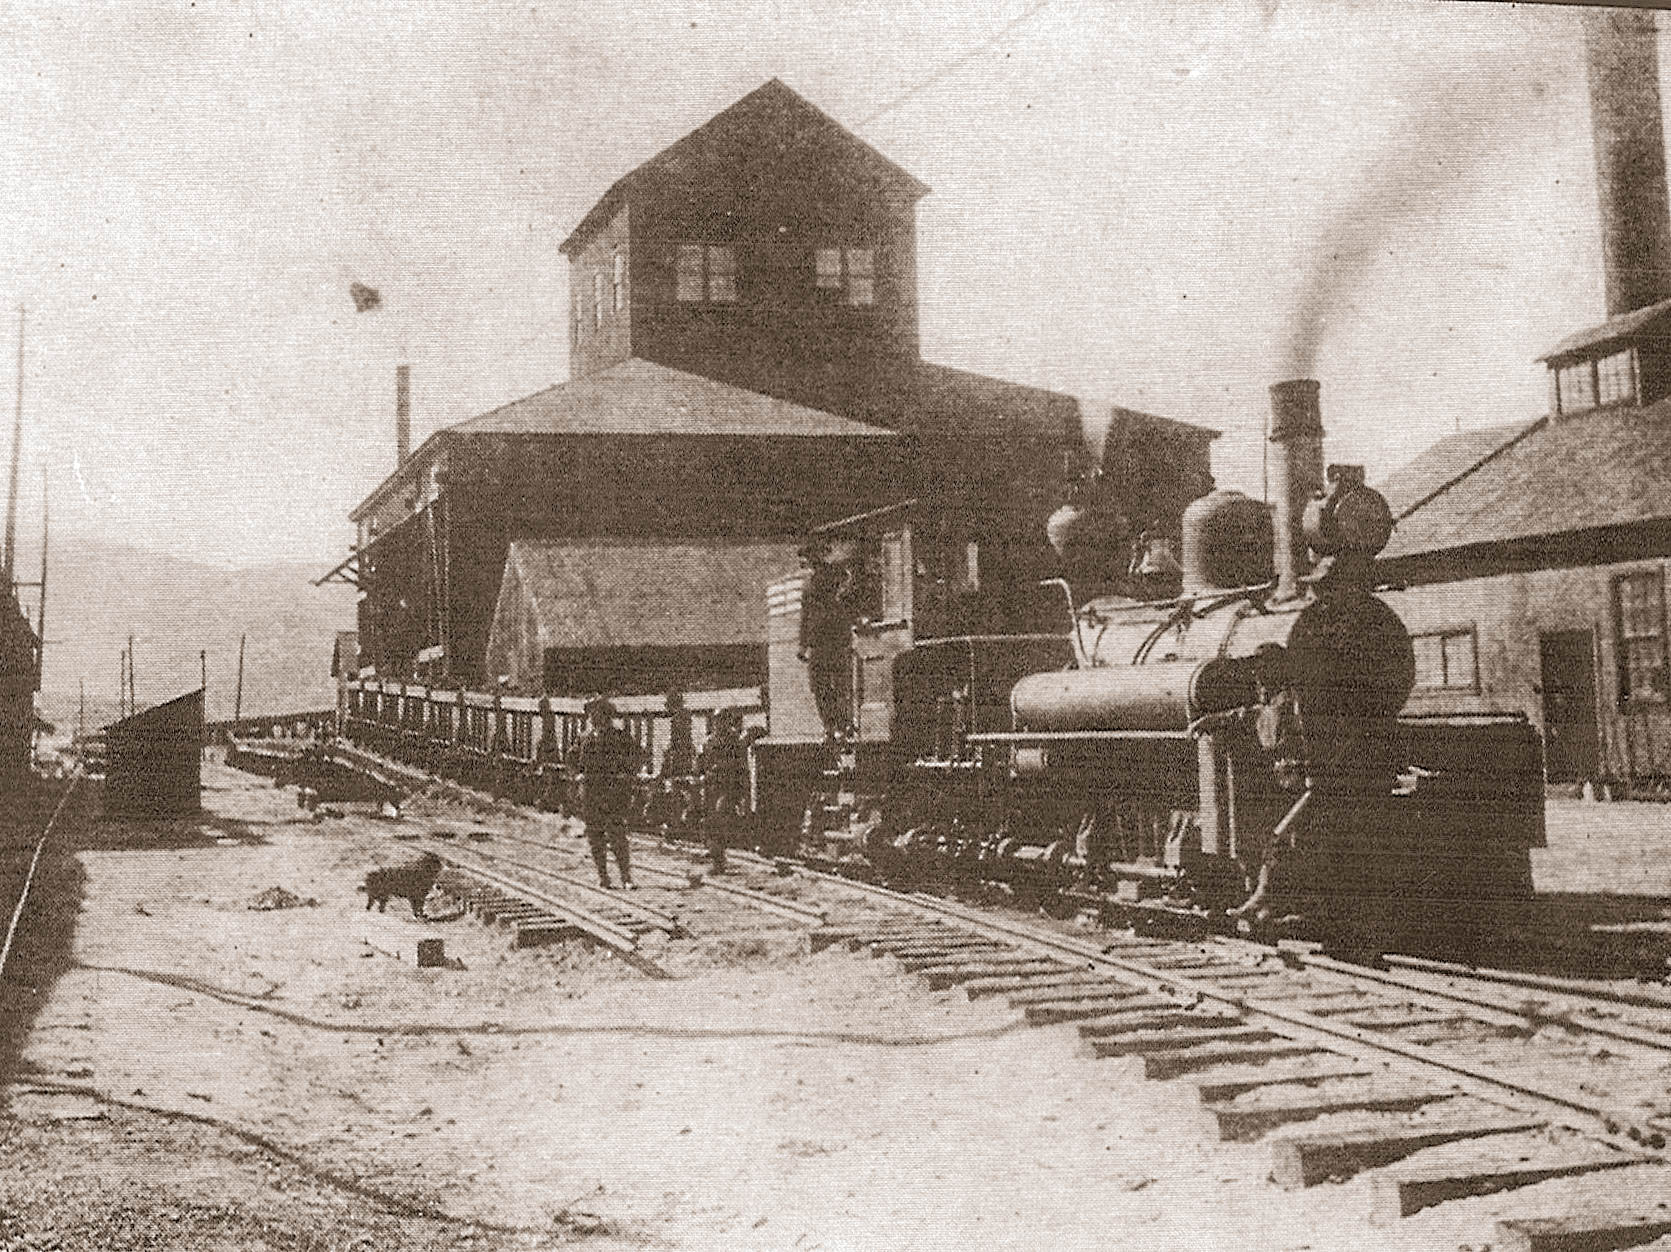 Rail load-out at Empire Mine c.1906